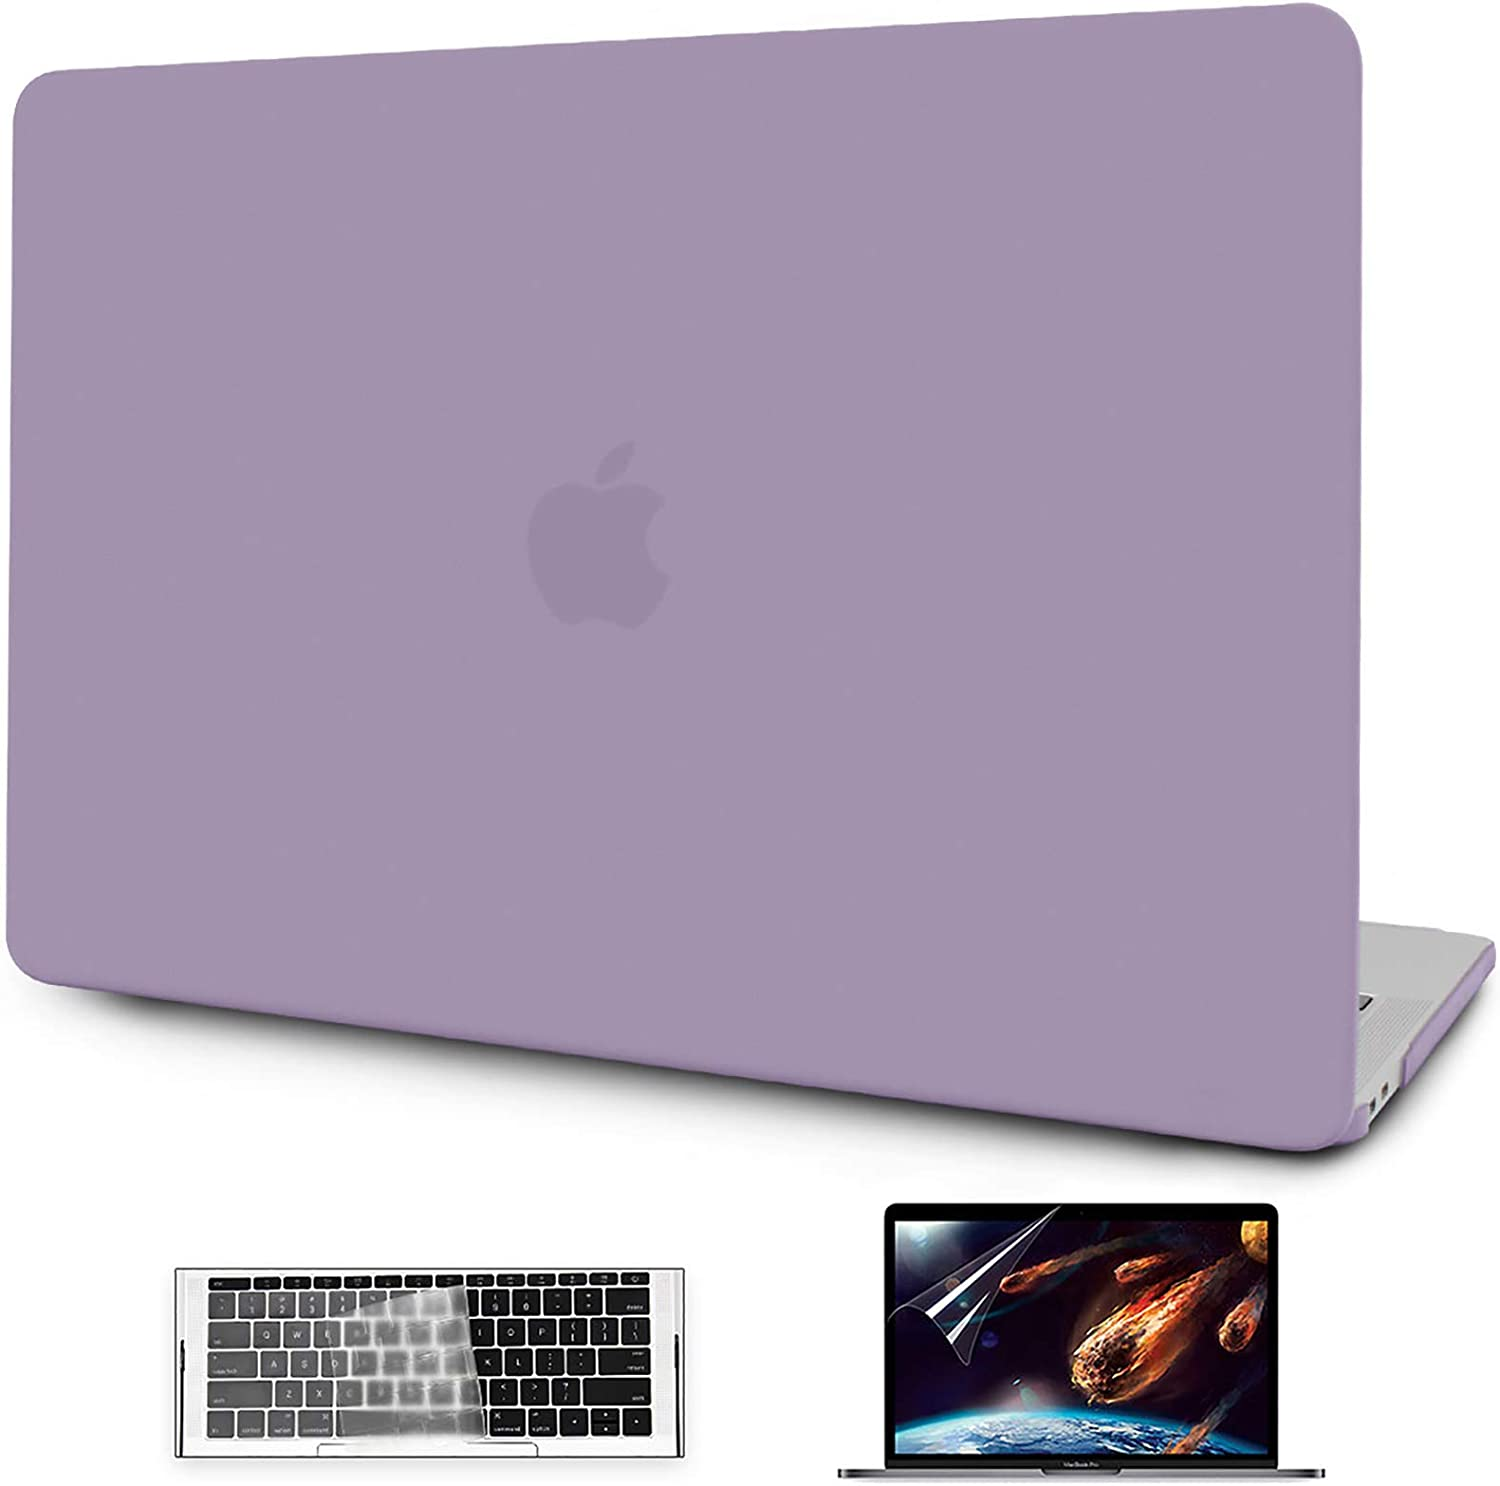 OneGET MacBook Pro 13 Inch Case with Touch Bar Laptop Case MacBook Pro 13 Inch 2016 2017 2018 2019 Release A1989 A1706 A1708 A2159 Minimalist Thin Matte PP Hard Shell Cover for Pro 13 (Taro Purple)